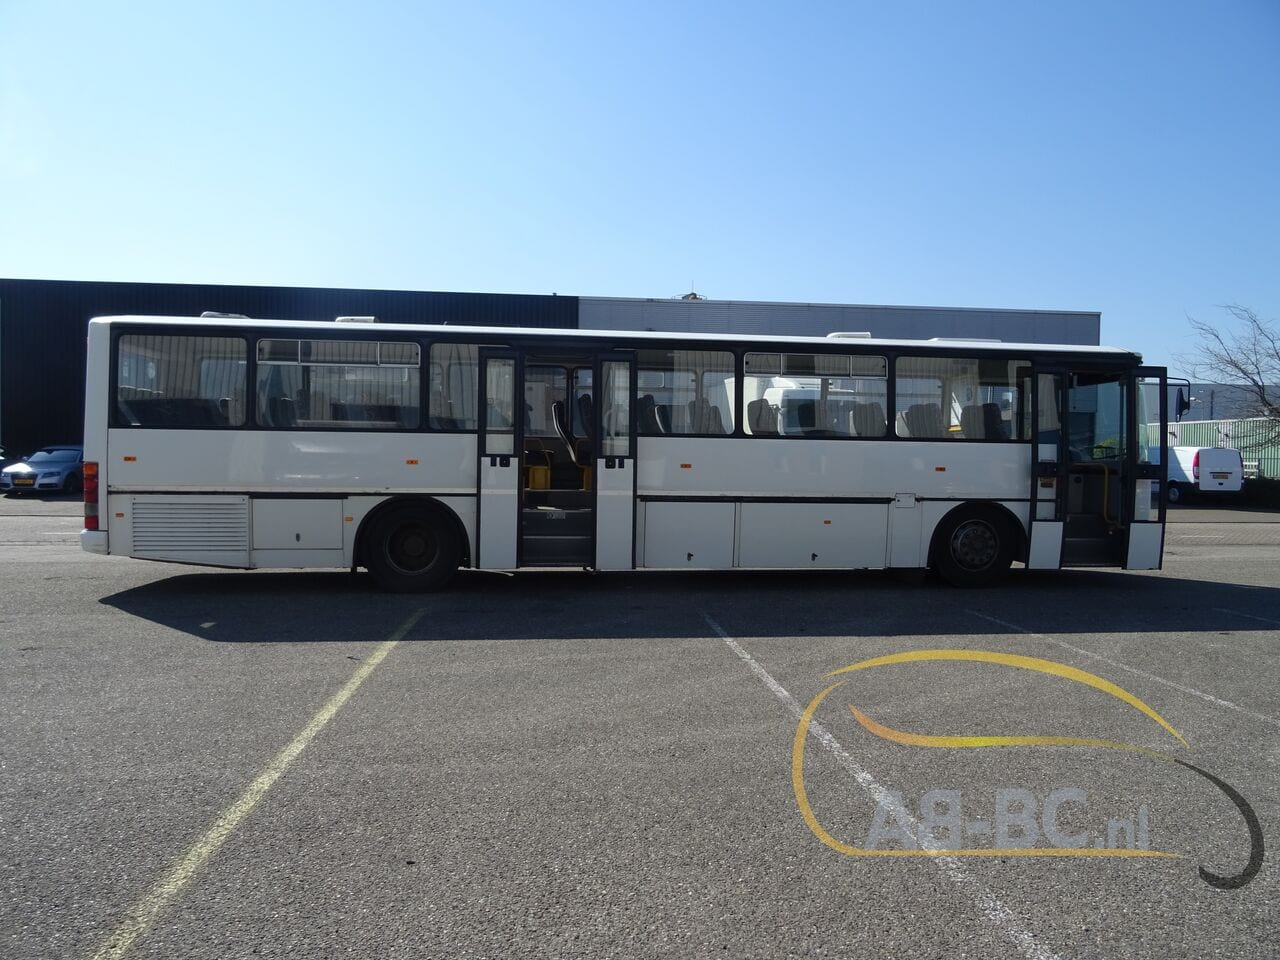 interurban-busIVECO-Irisbus-Recreo-59-Seats---1619430628288989145_big_0e3ff0d21c6b066fad8f5026460f1bd8--21042612454255740900